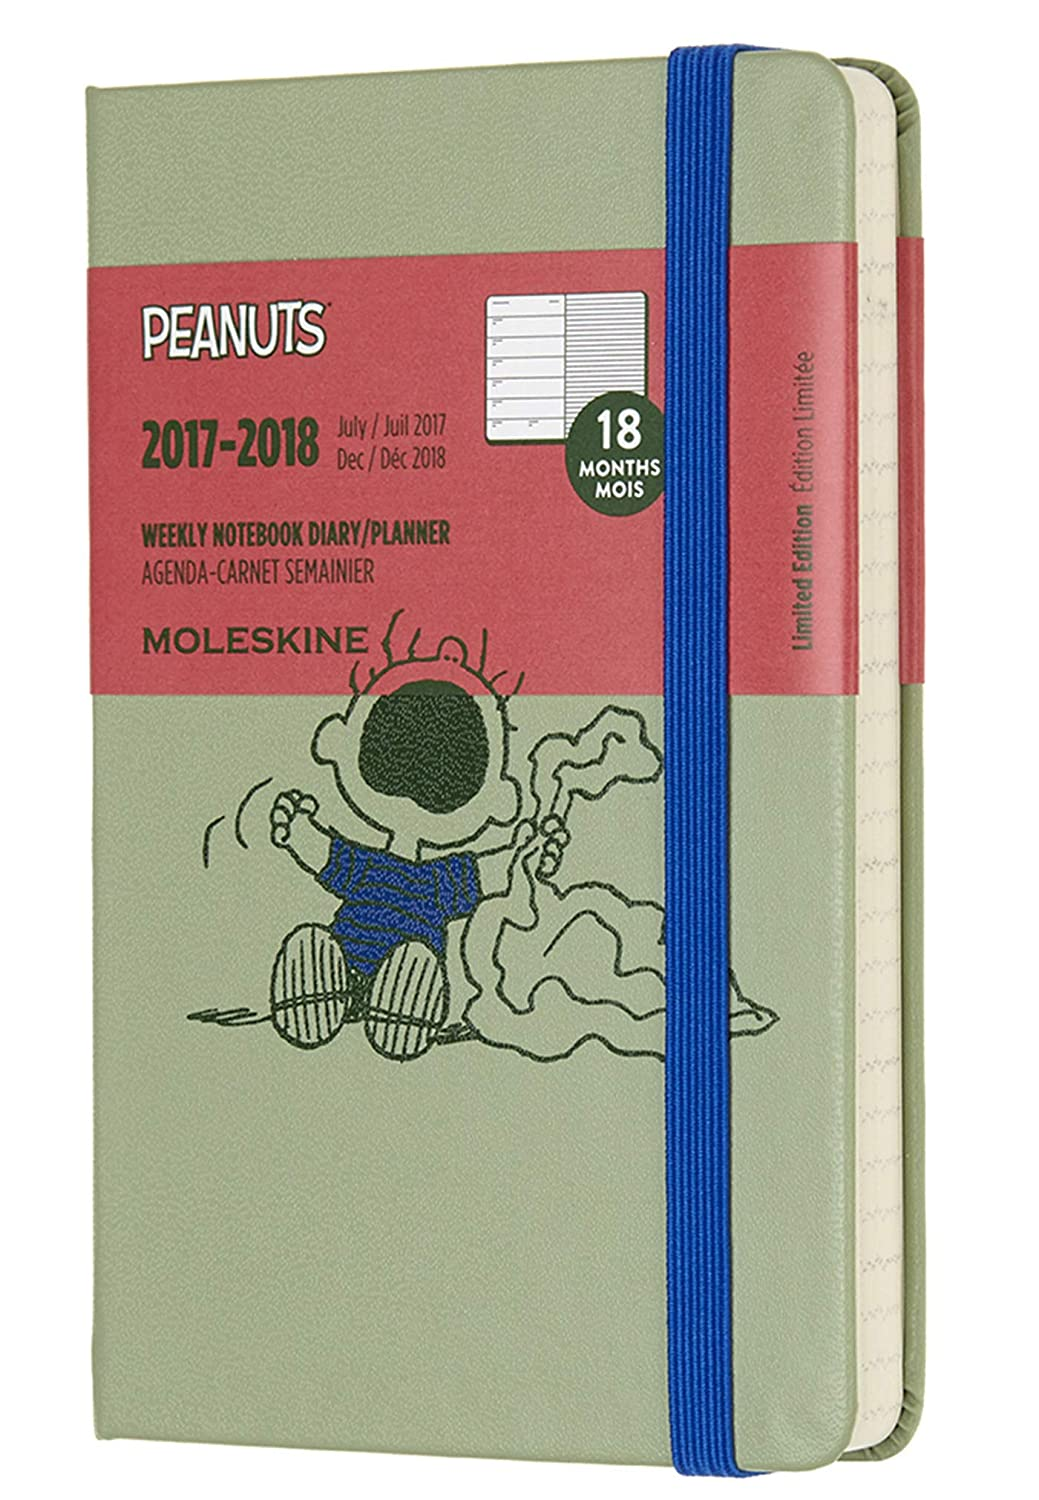 Moleskine Limited Edition Peanuts 18 Month 2017-2018 Weekly Planner, Hard Cover, Pocket (3.5